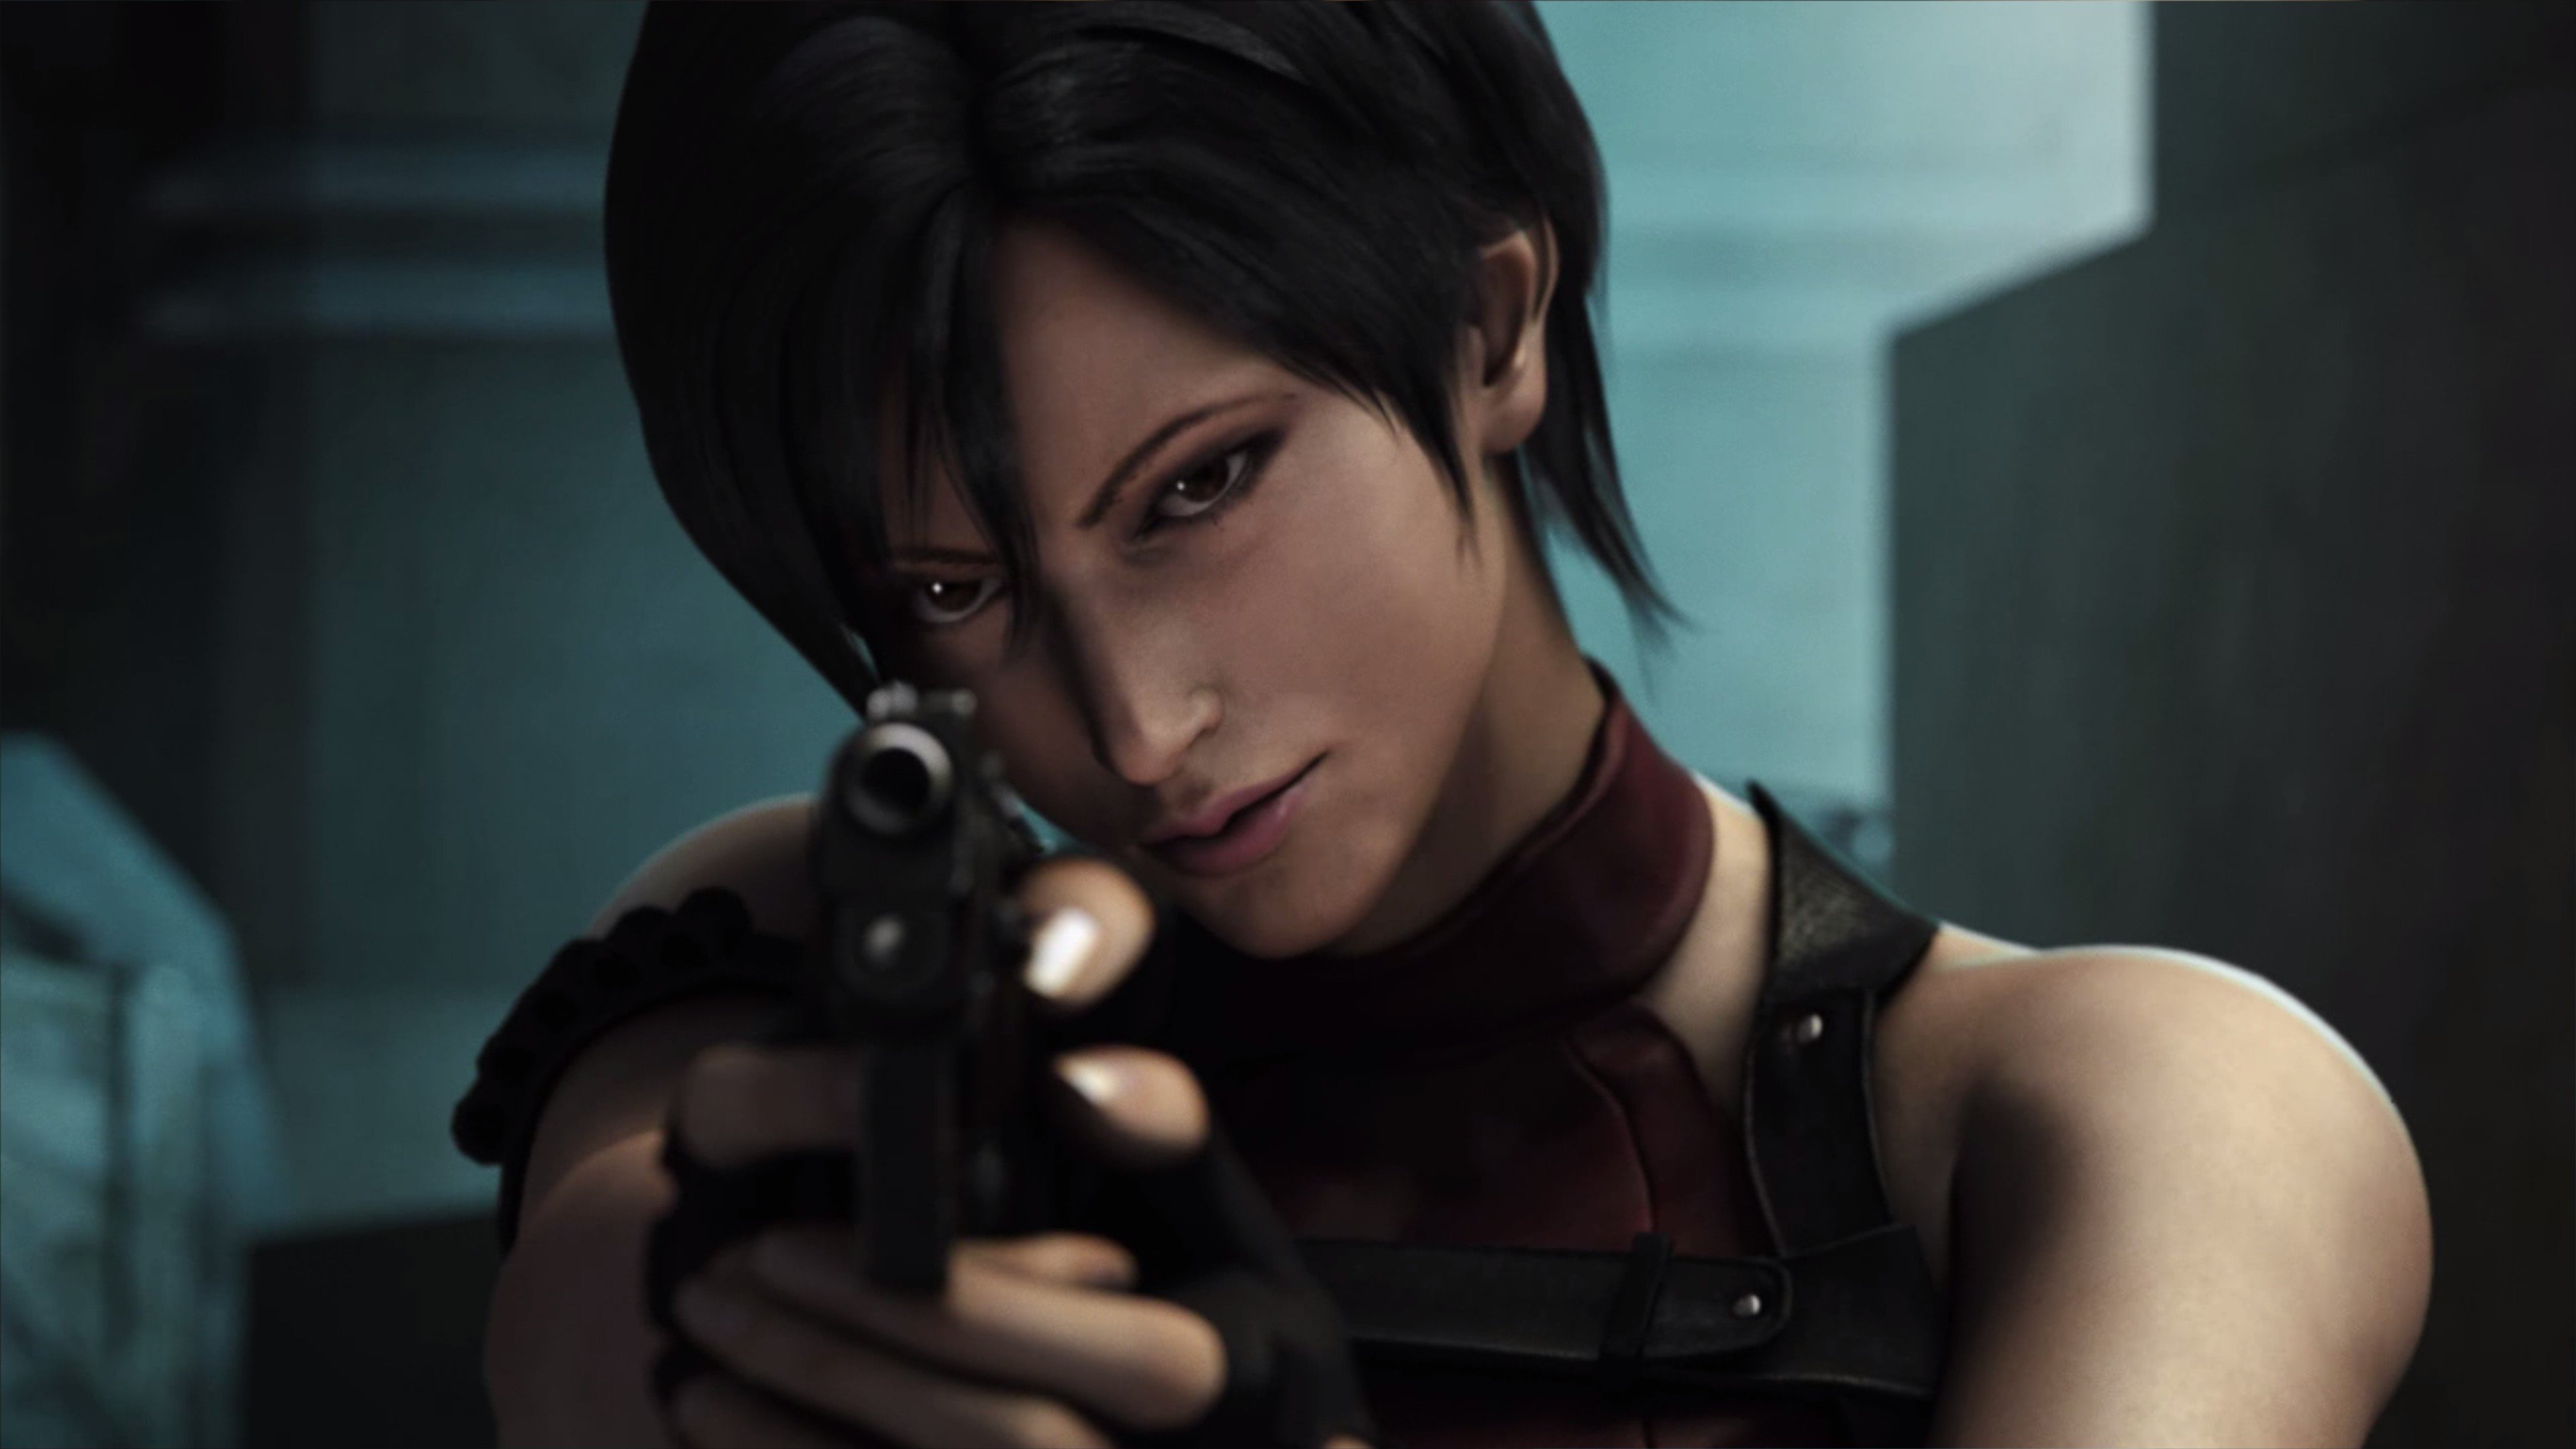 General 3840x2160 Ada Wong Resident Evil Resident Evil 4 Girl With Weapon Japan